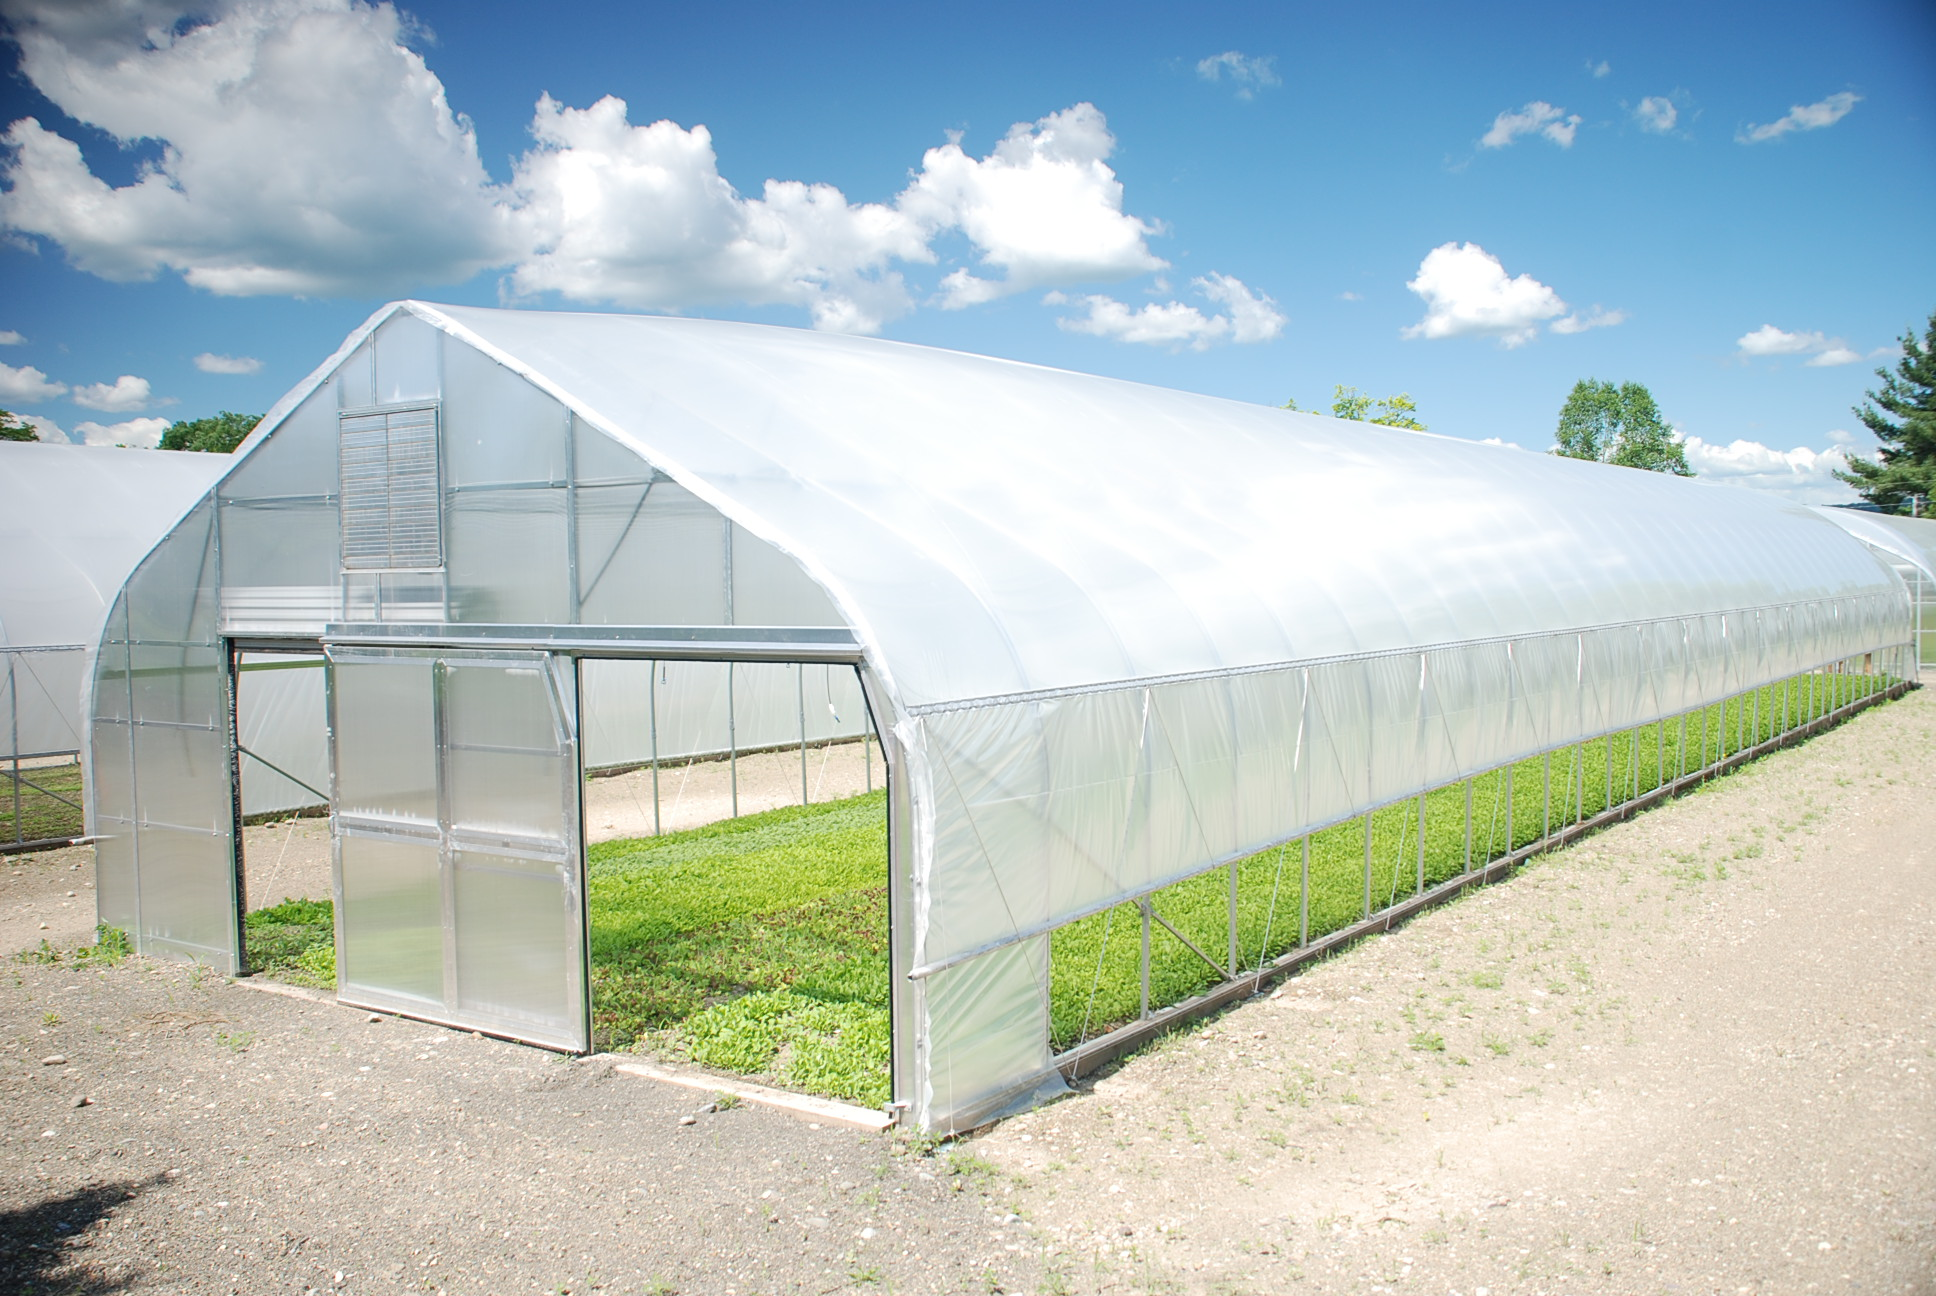 Nrcs announces 2016 deadline for high tunnel funding - Increase greenhouse production cost free trick ...